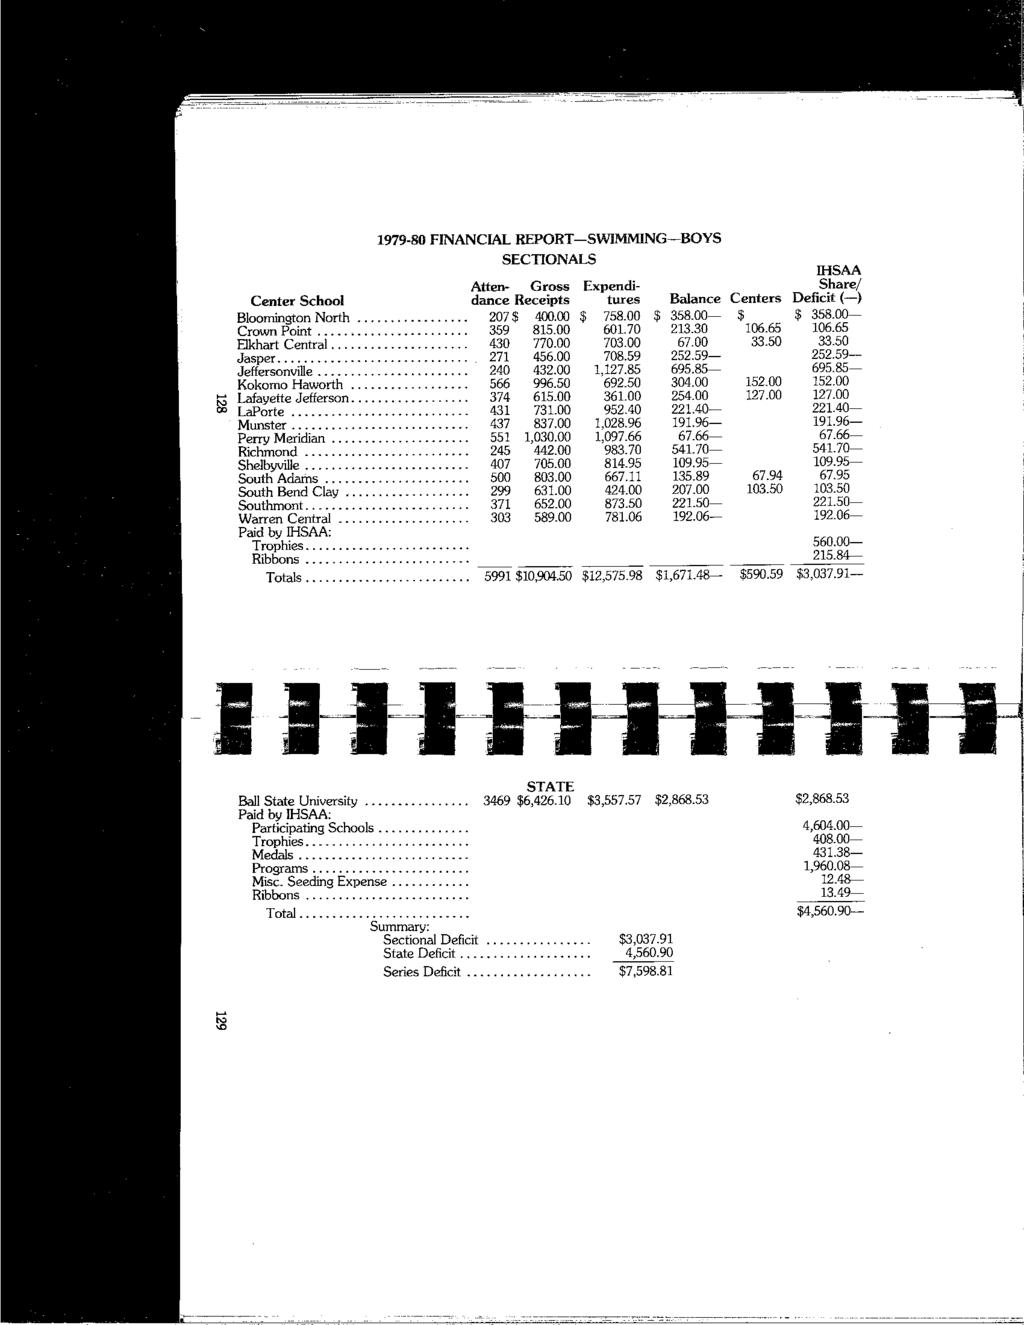 1979-80 FINANCIAL REPORT-SWIMMING-BOYS SECTIONALS IHSAA Atten- Gross Expenditures Balance Centers Deficit(-) Share/ Center School dance Receipts Bloorrrington North................. 207 $ 400.